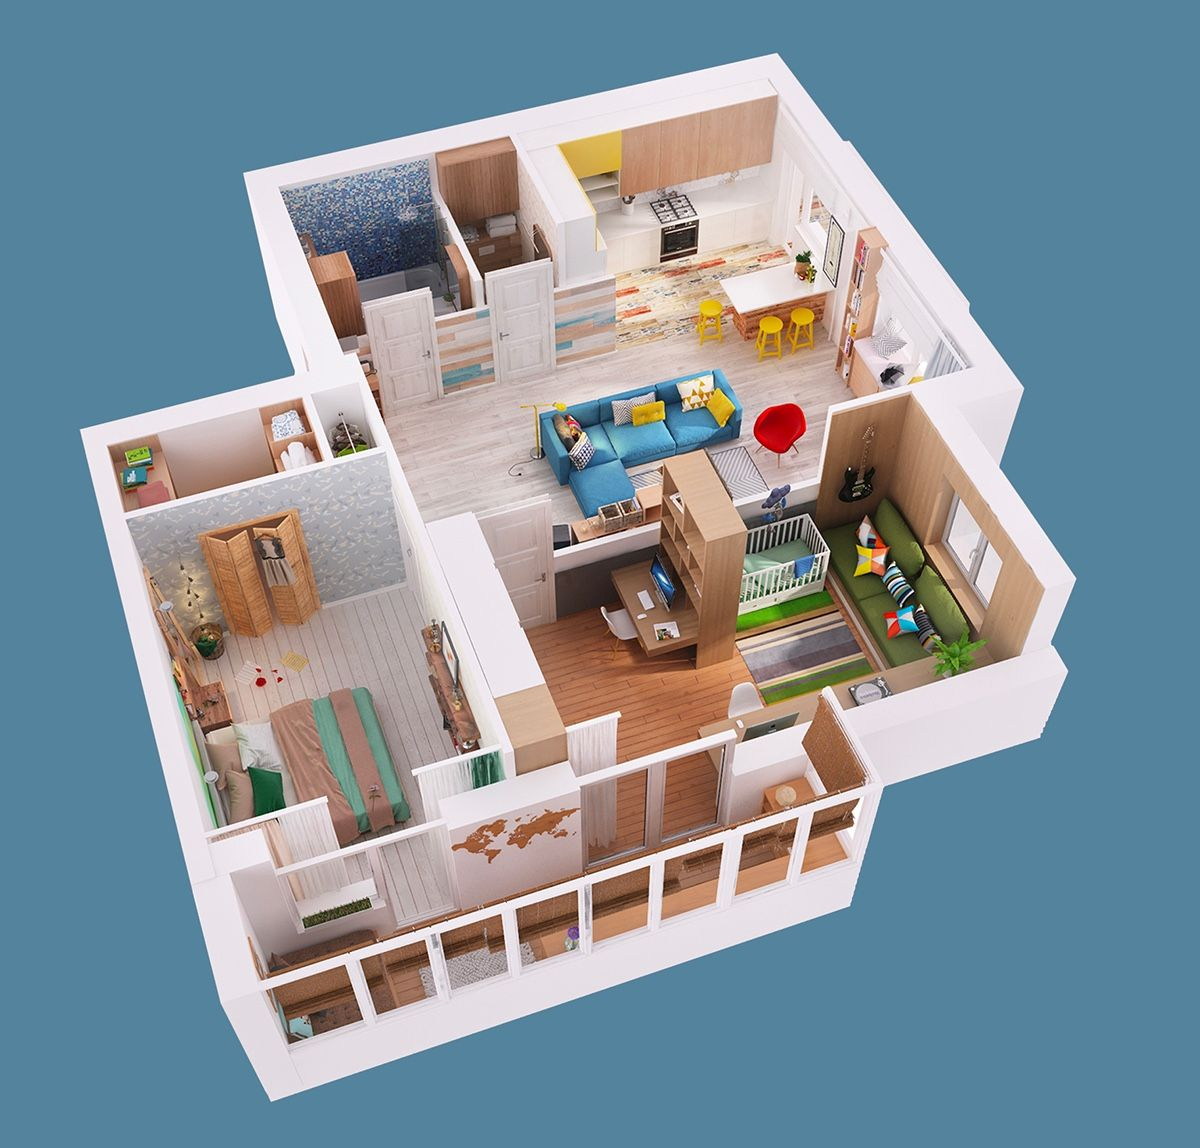 2 gorgeous single story homes with 80 square meter floor space rh pinterest com